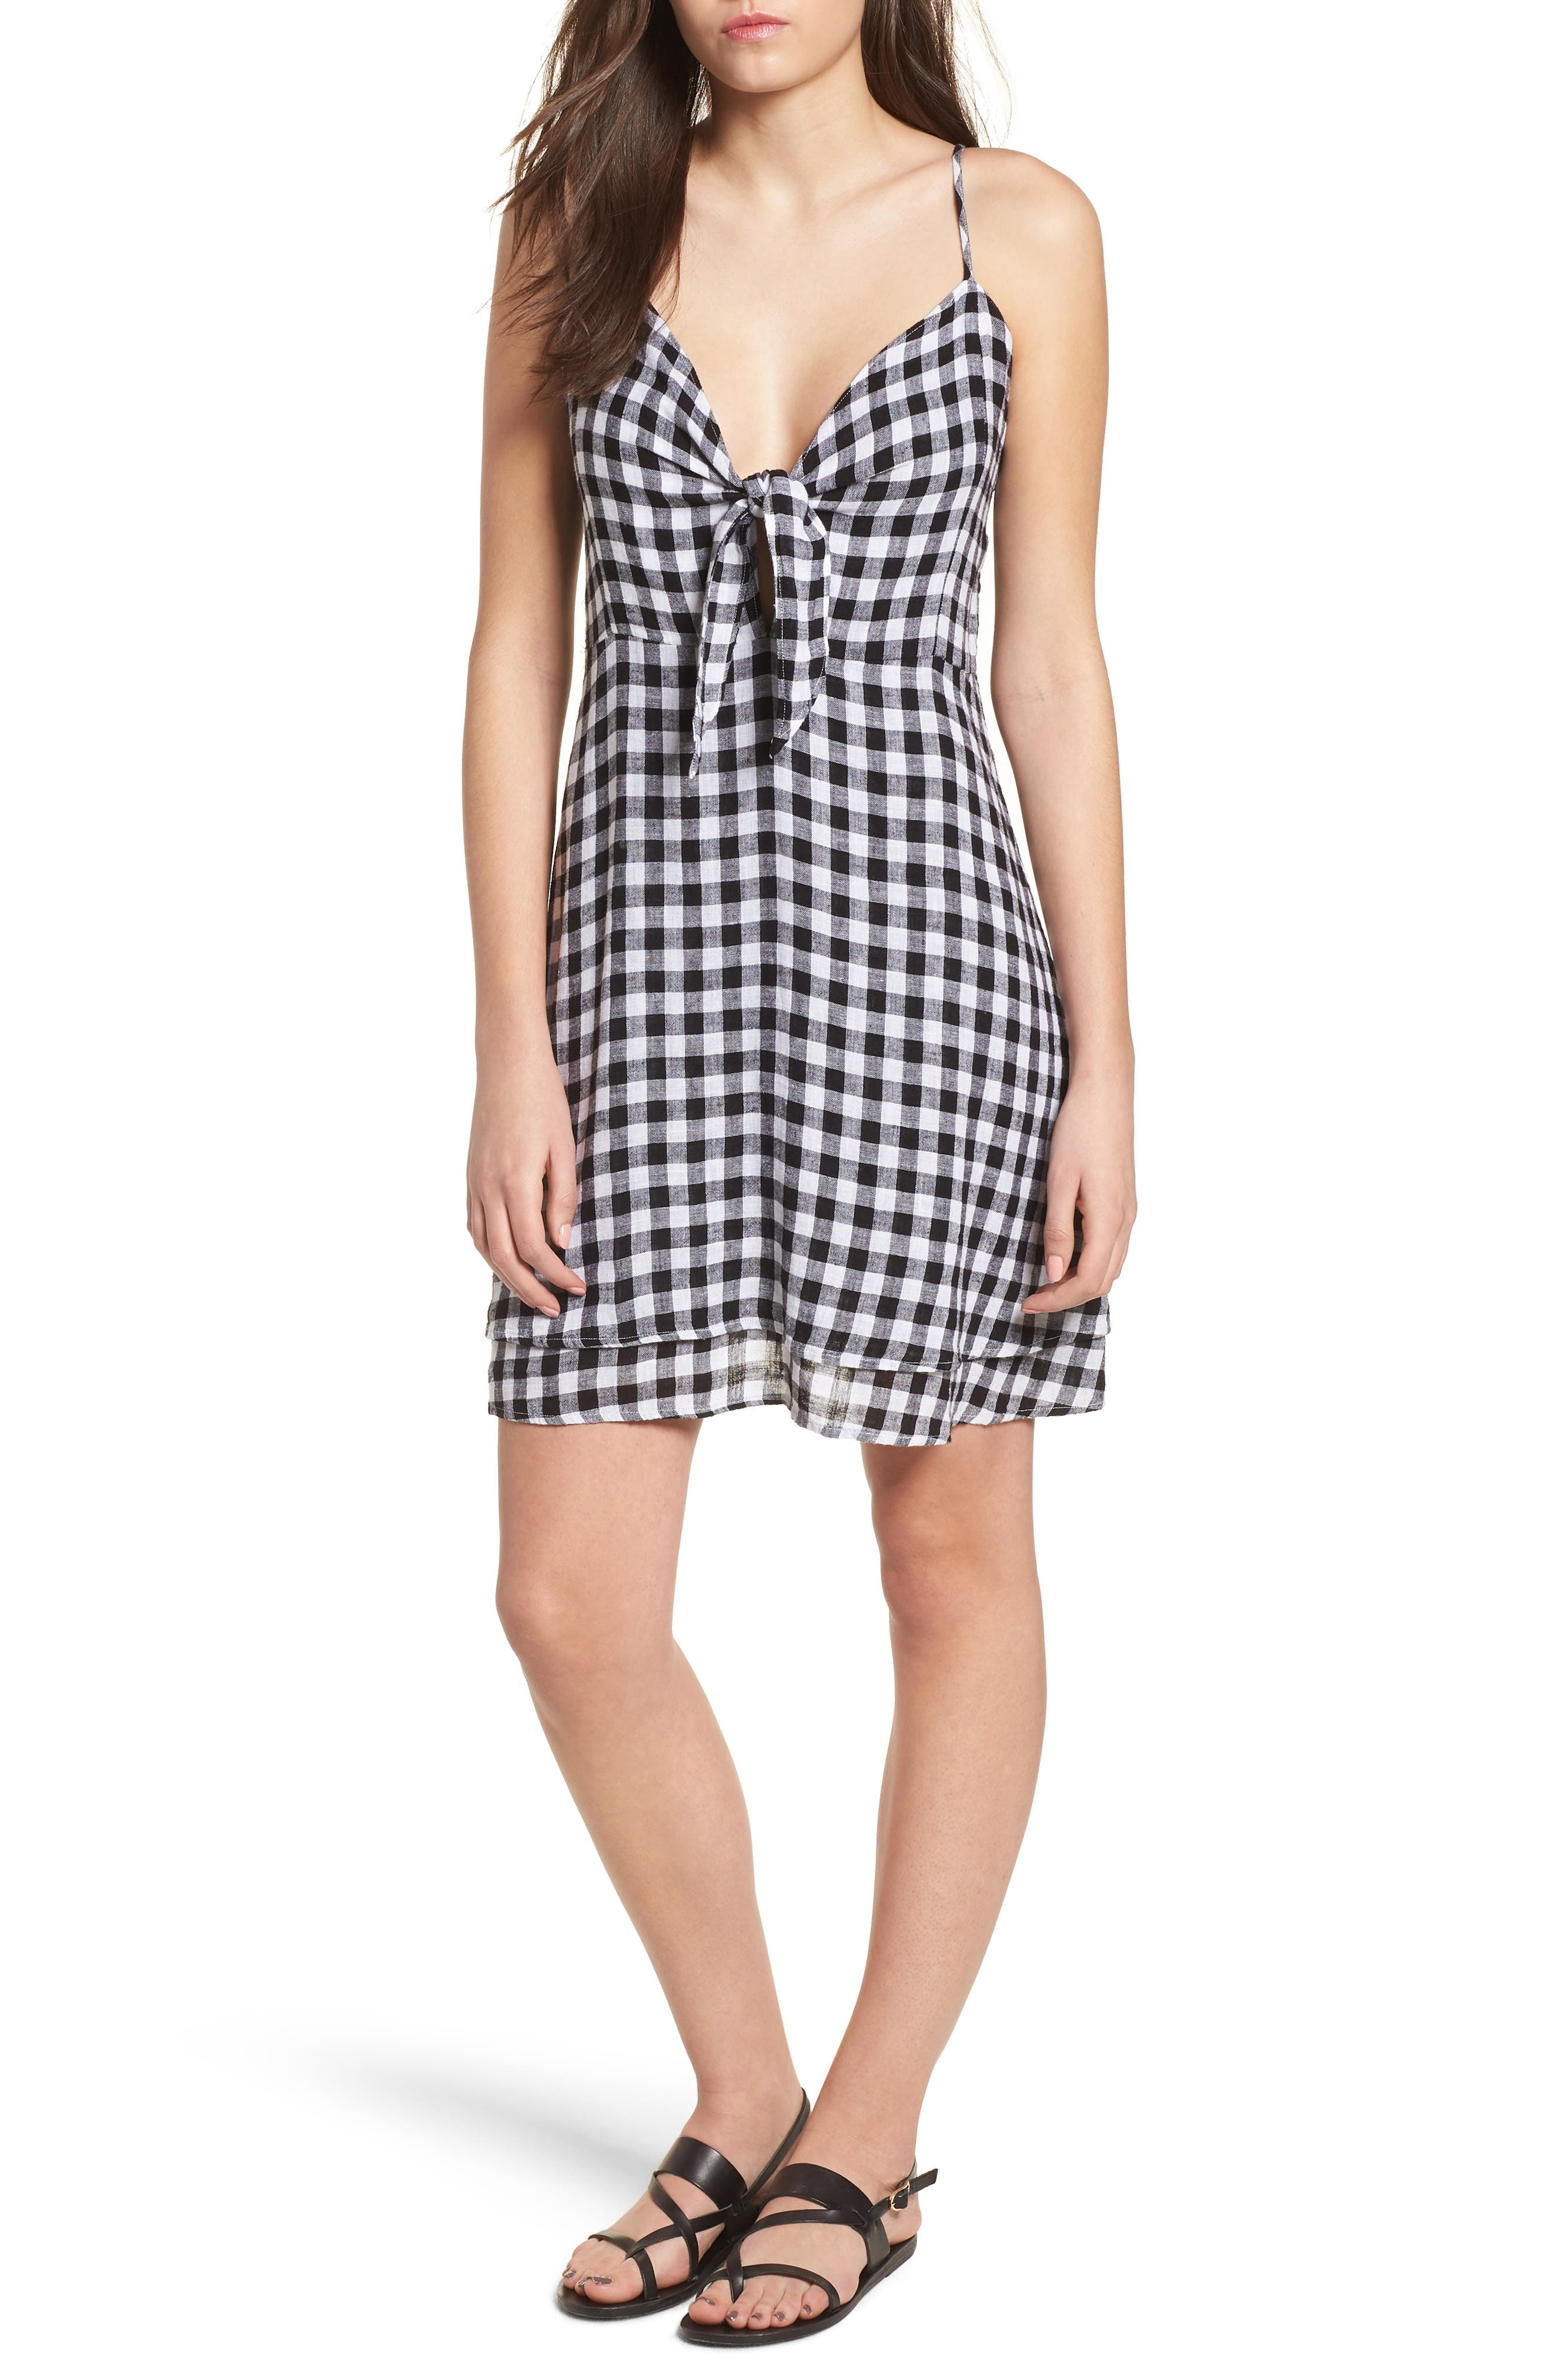 August Gingham Tie Front Dress,                         Main,                         color, Black Gingham